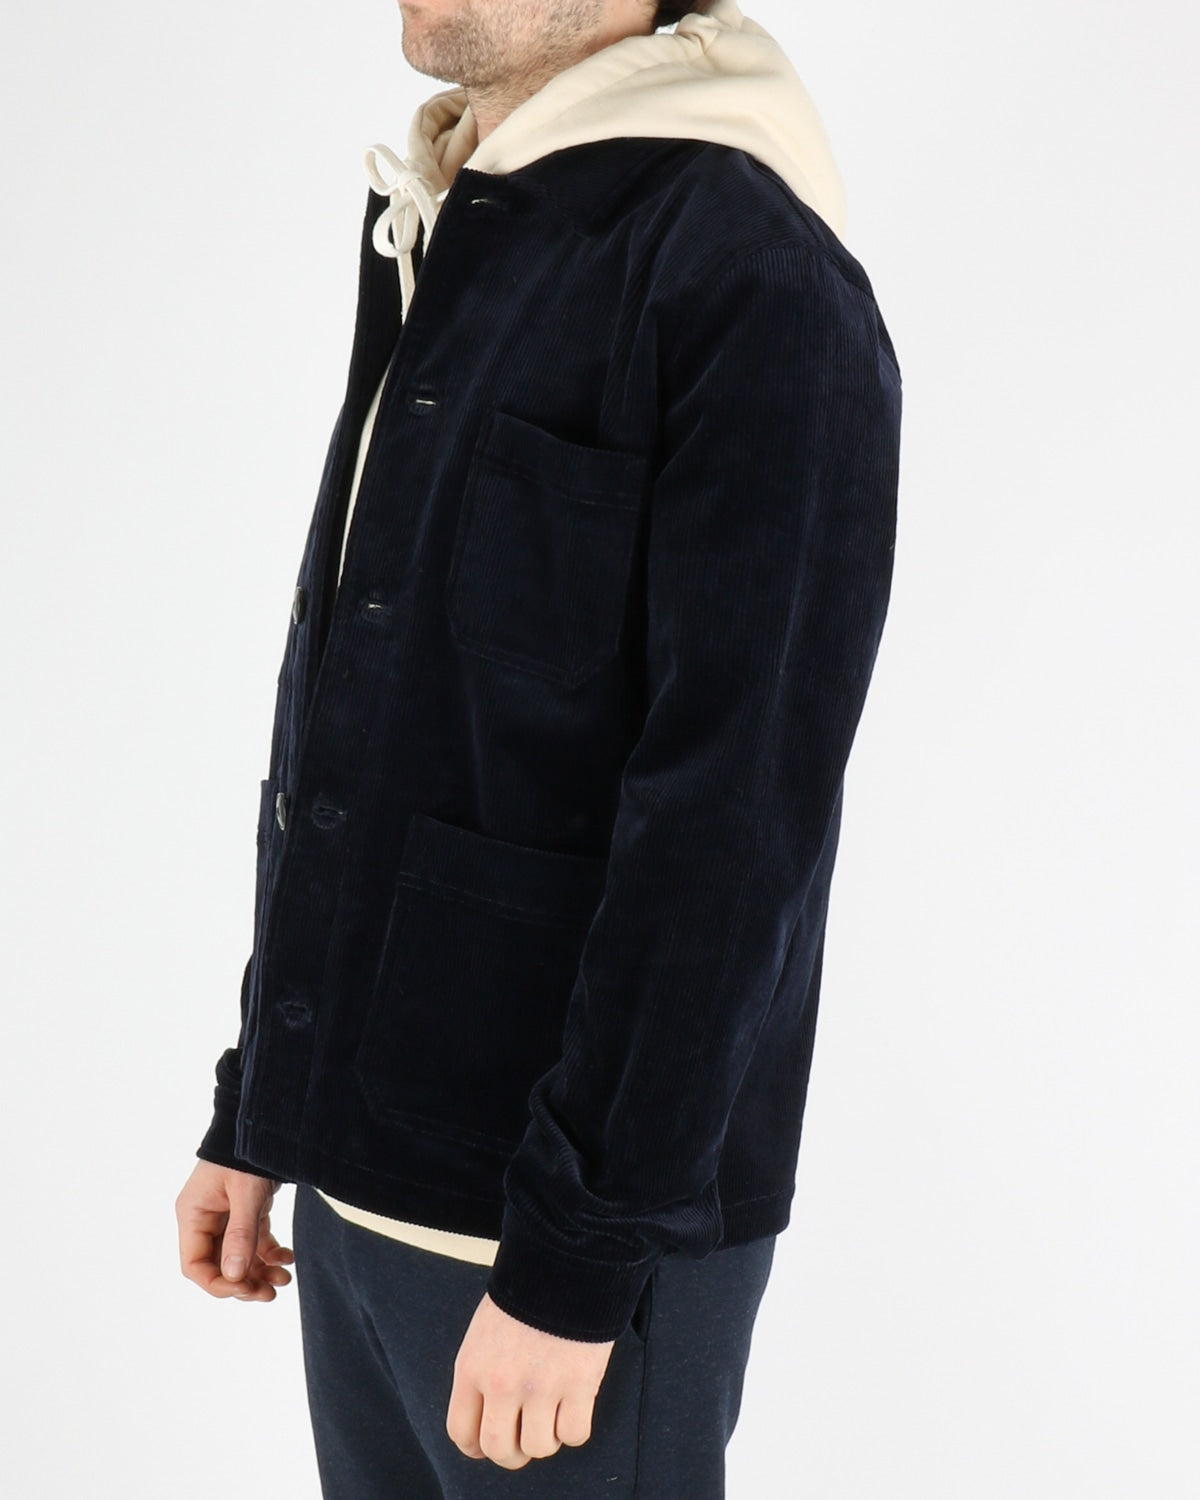 samsoe samsoe_worker jacket_night sky_2_4